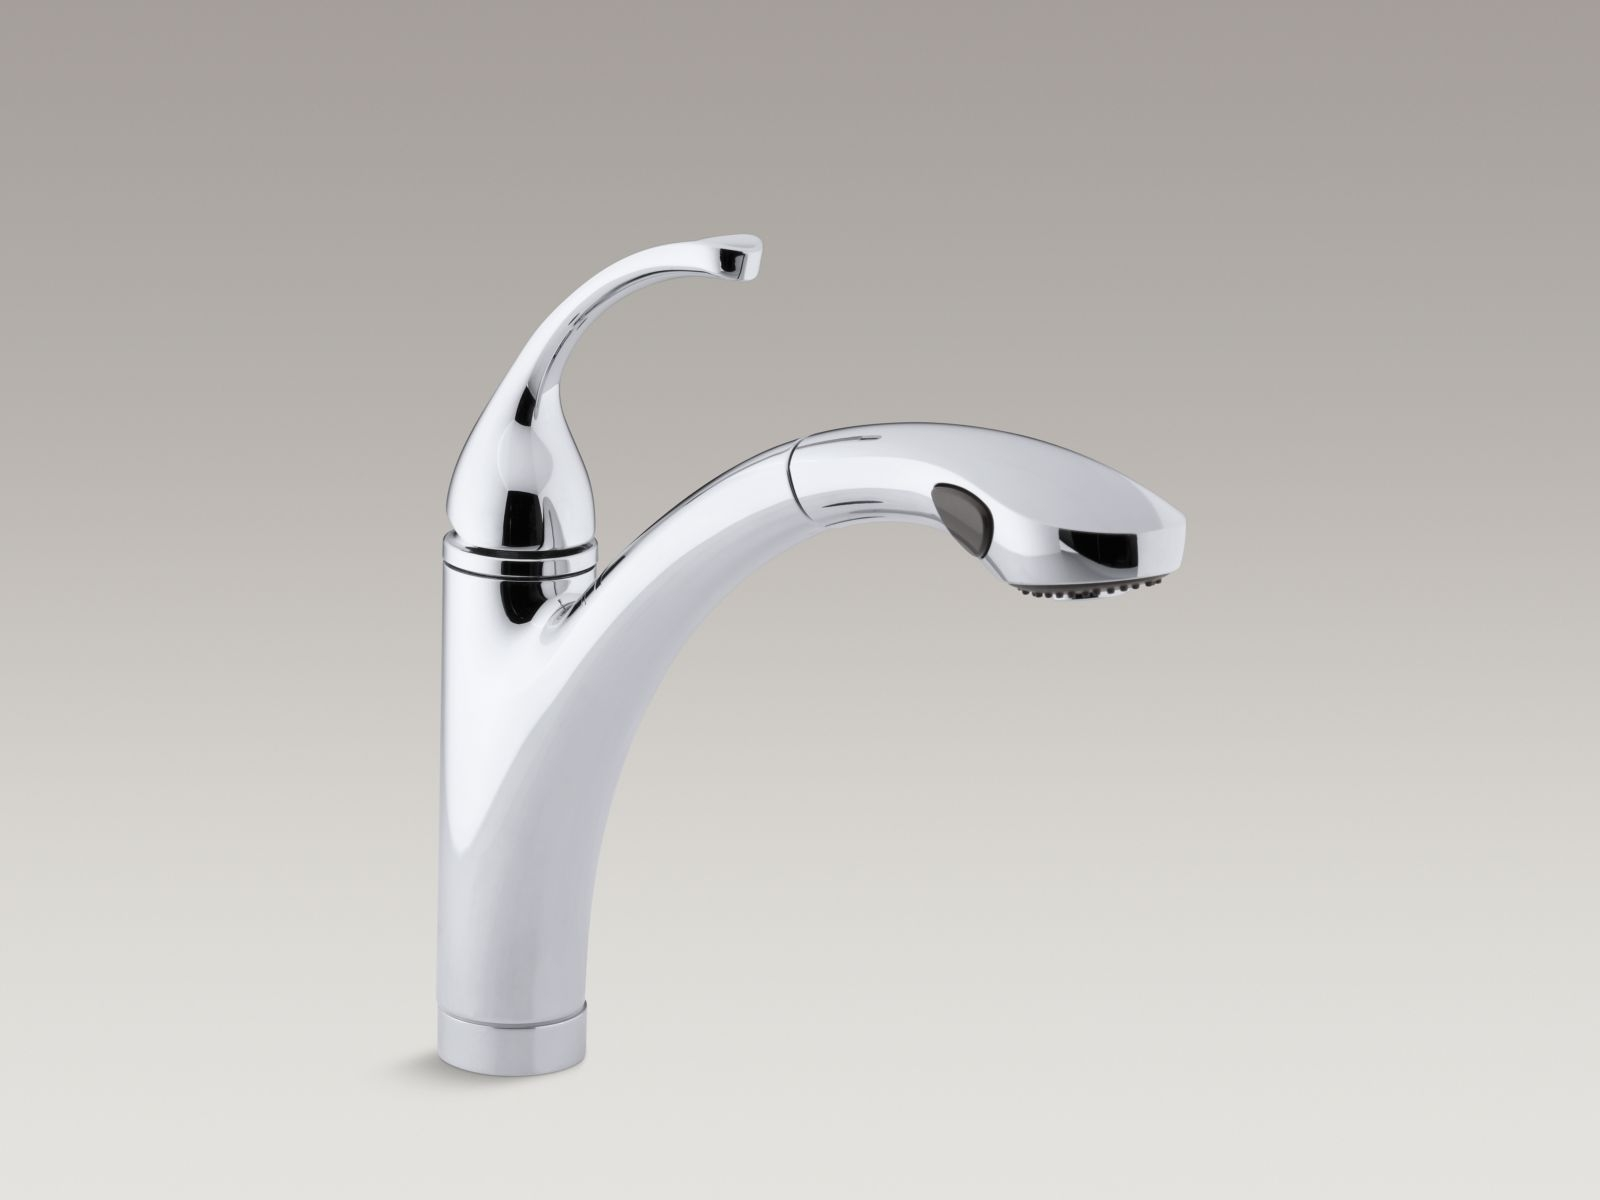 Ideas, kohler forte pull out spray kitchen faucet kohler forte pull out spray kitchen faucet buyplumbing category pull out spout 1600 x 1200  .